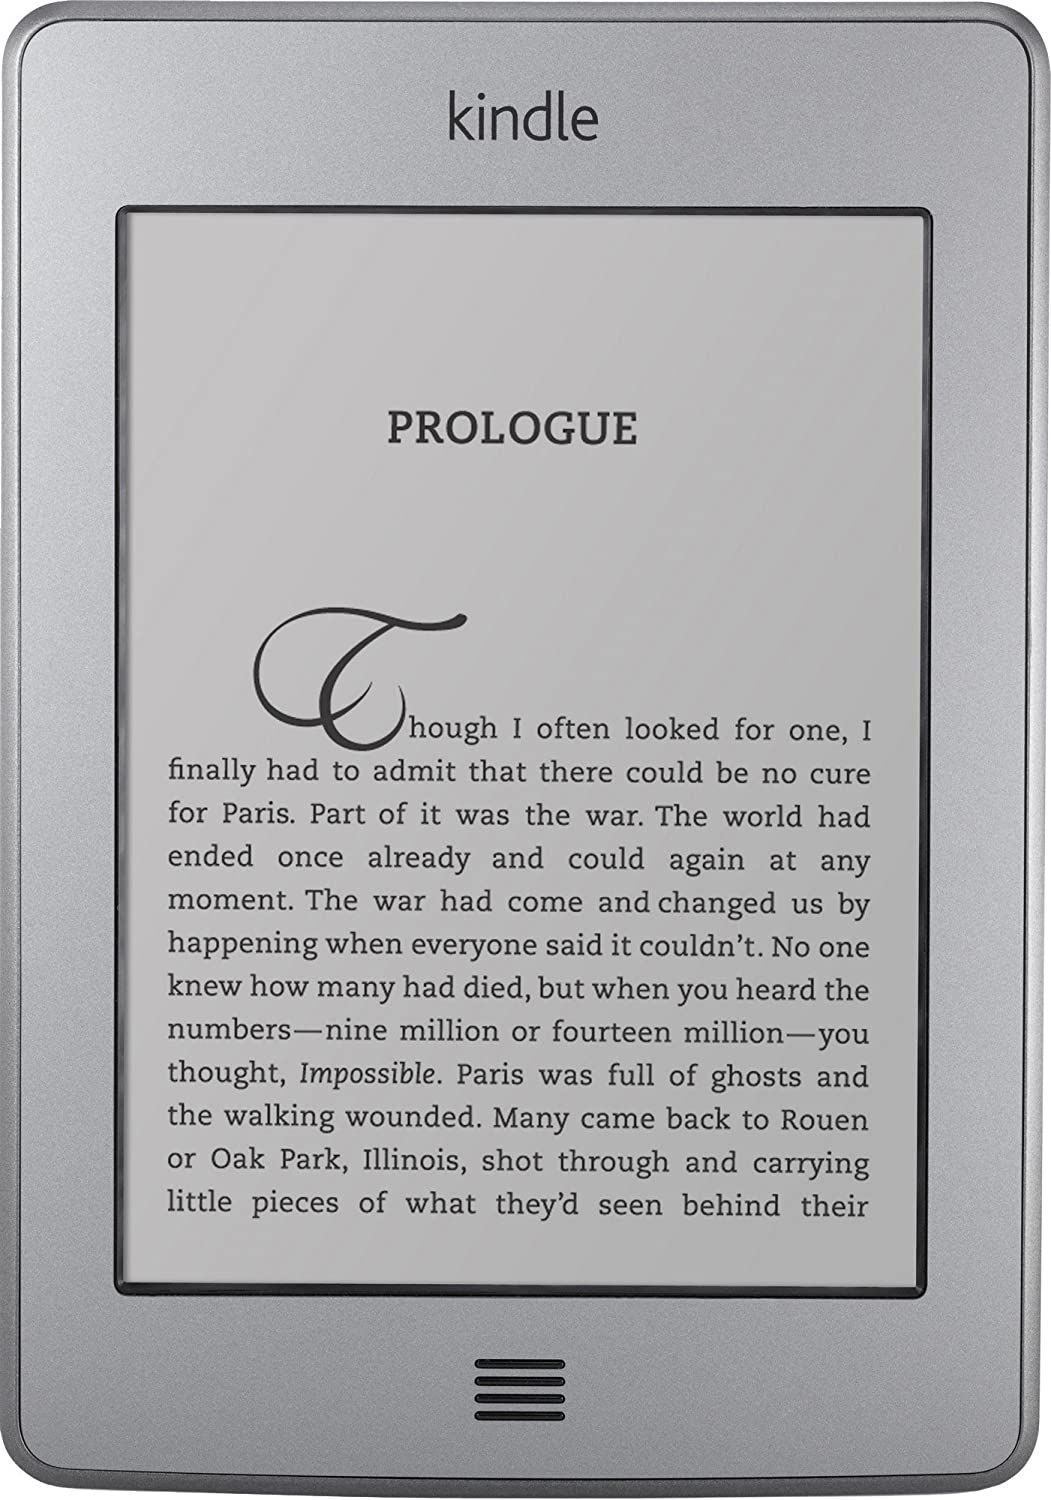 kindle touch wifi manual